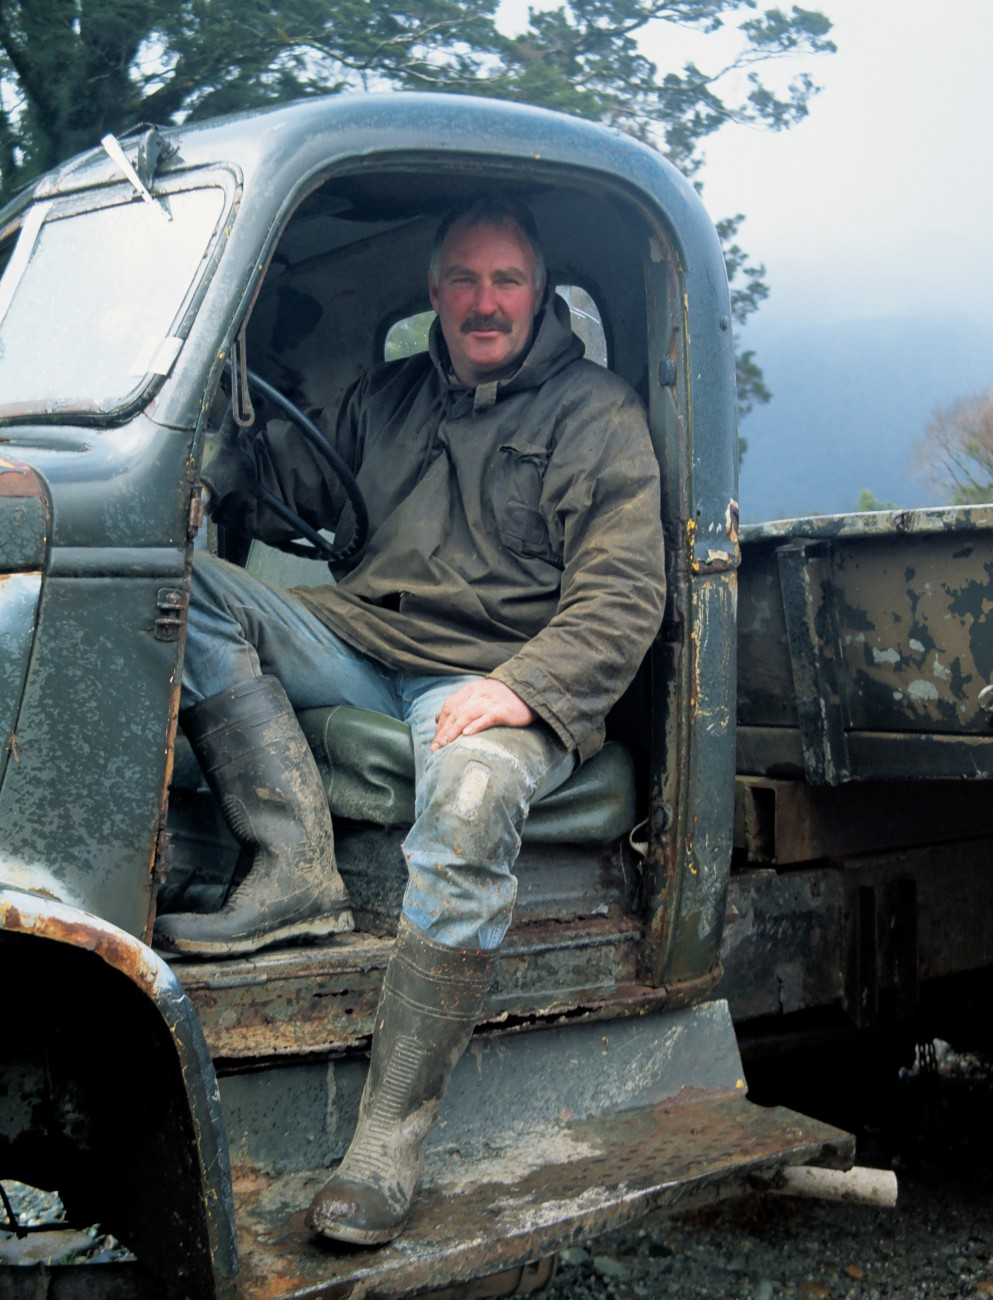 This West Coast truckie may not have a door to keep out the elements, but long gumboots and a parka certainly help.